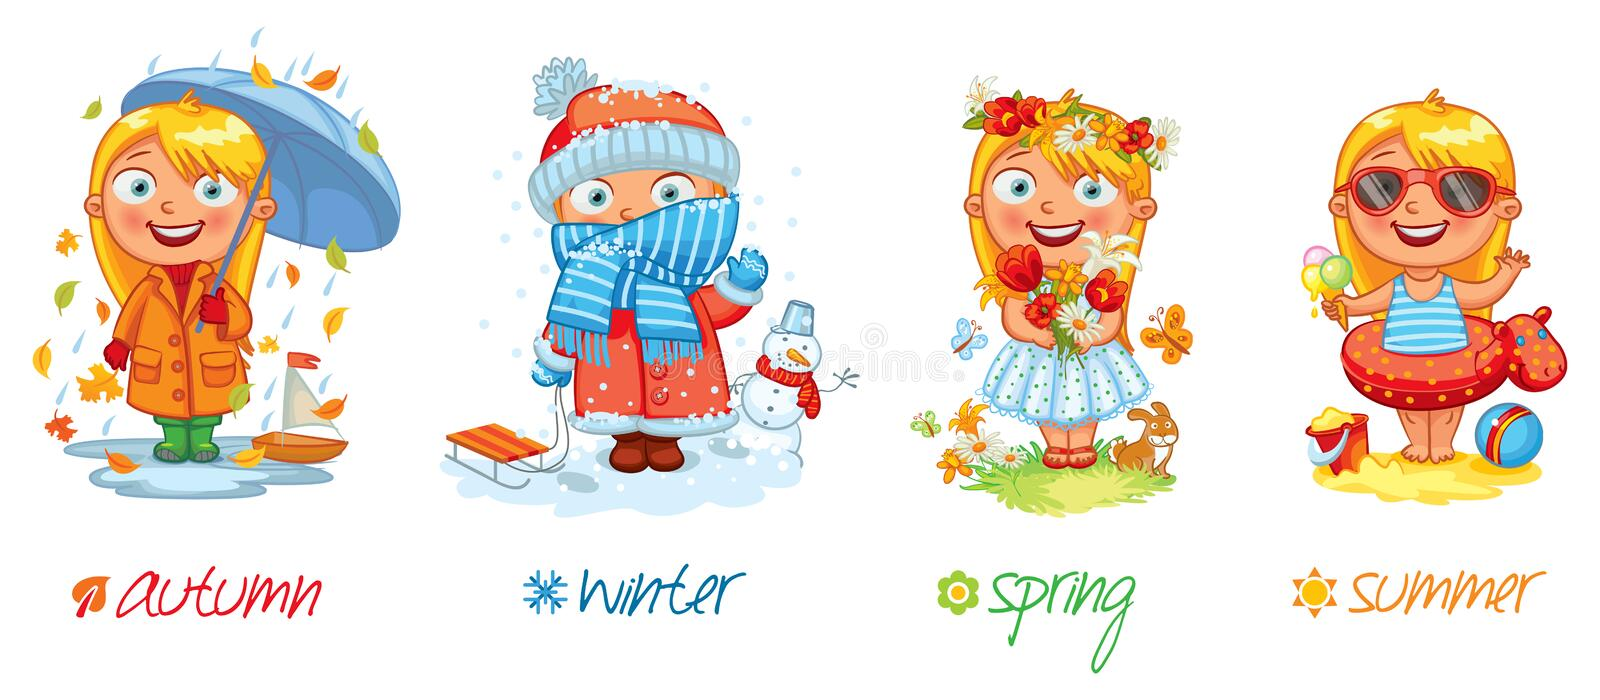 Stock Illustration Baby Girl Four Seasons Vector Illustration Isolated White Background Set Image48378070 on Four Seasons Clip Art